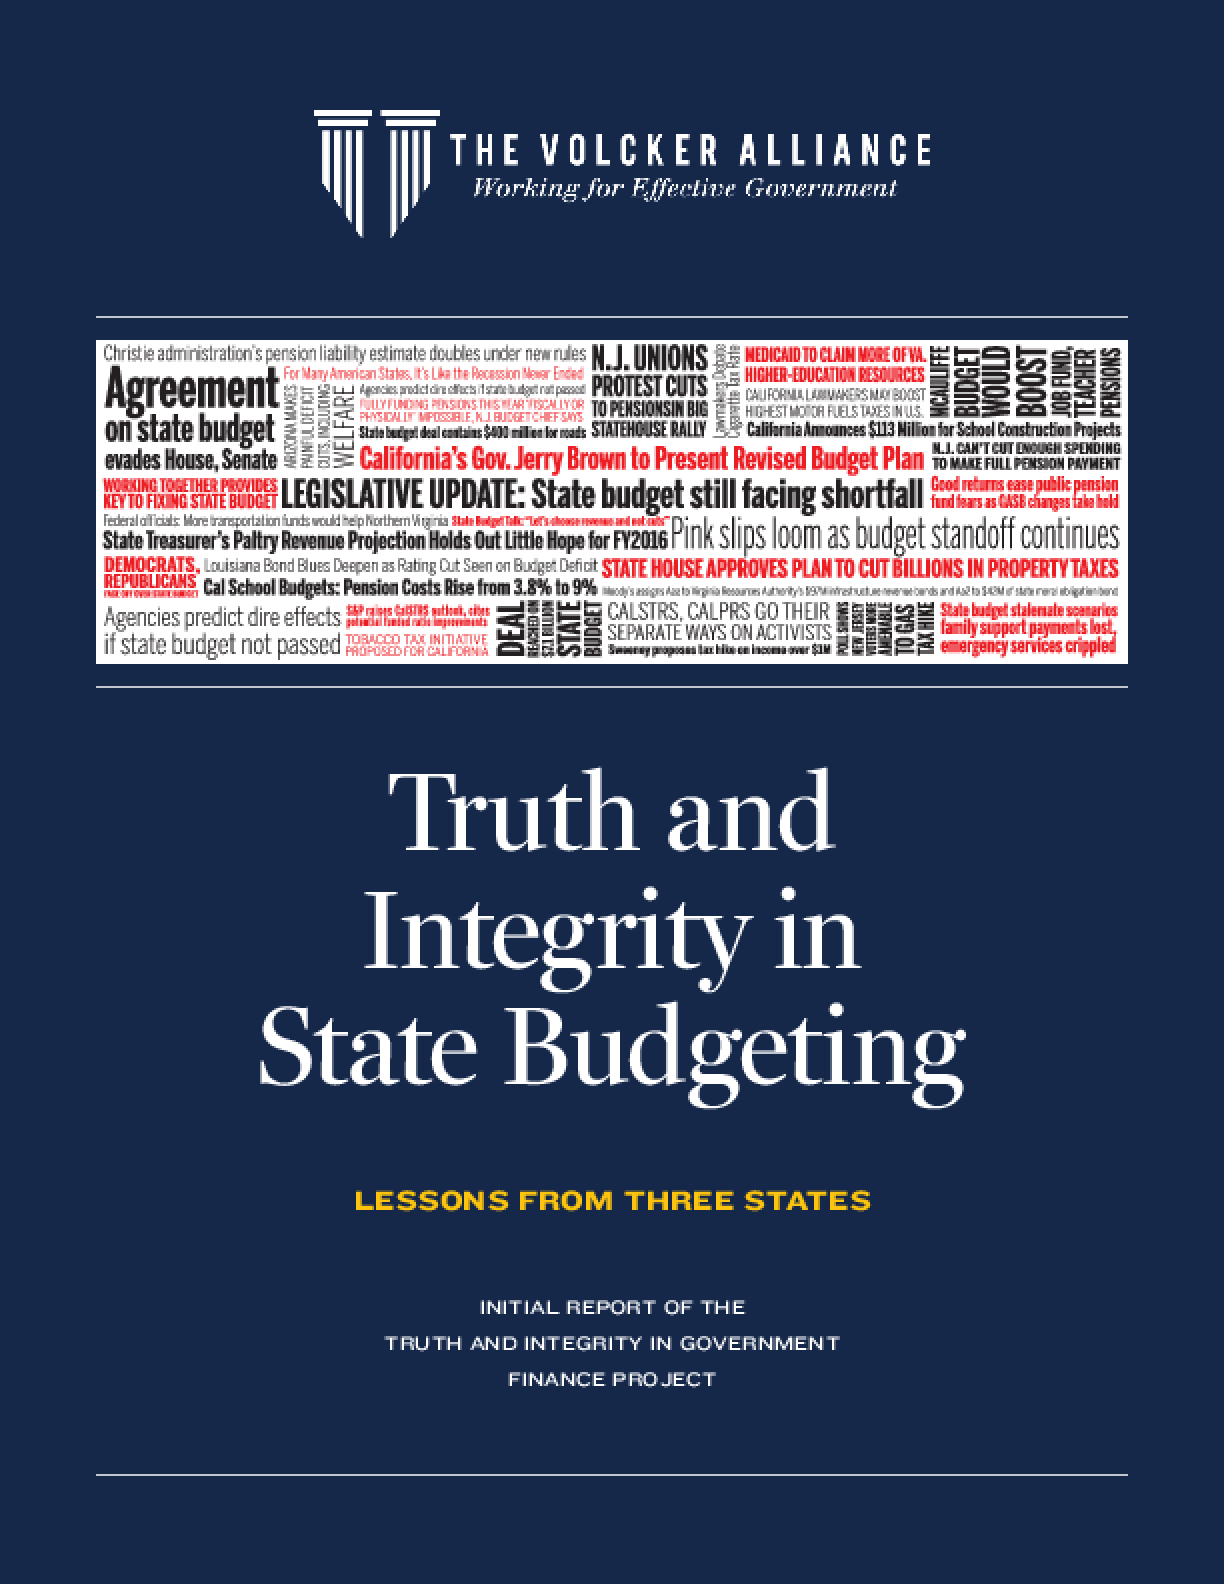 Truth and Integrity in State Budgeting: Lessons From Three States